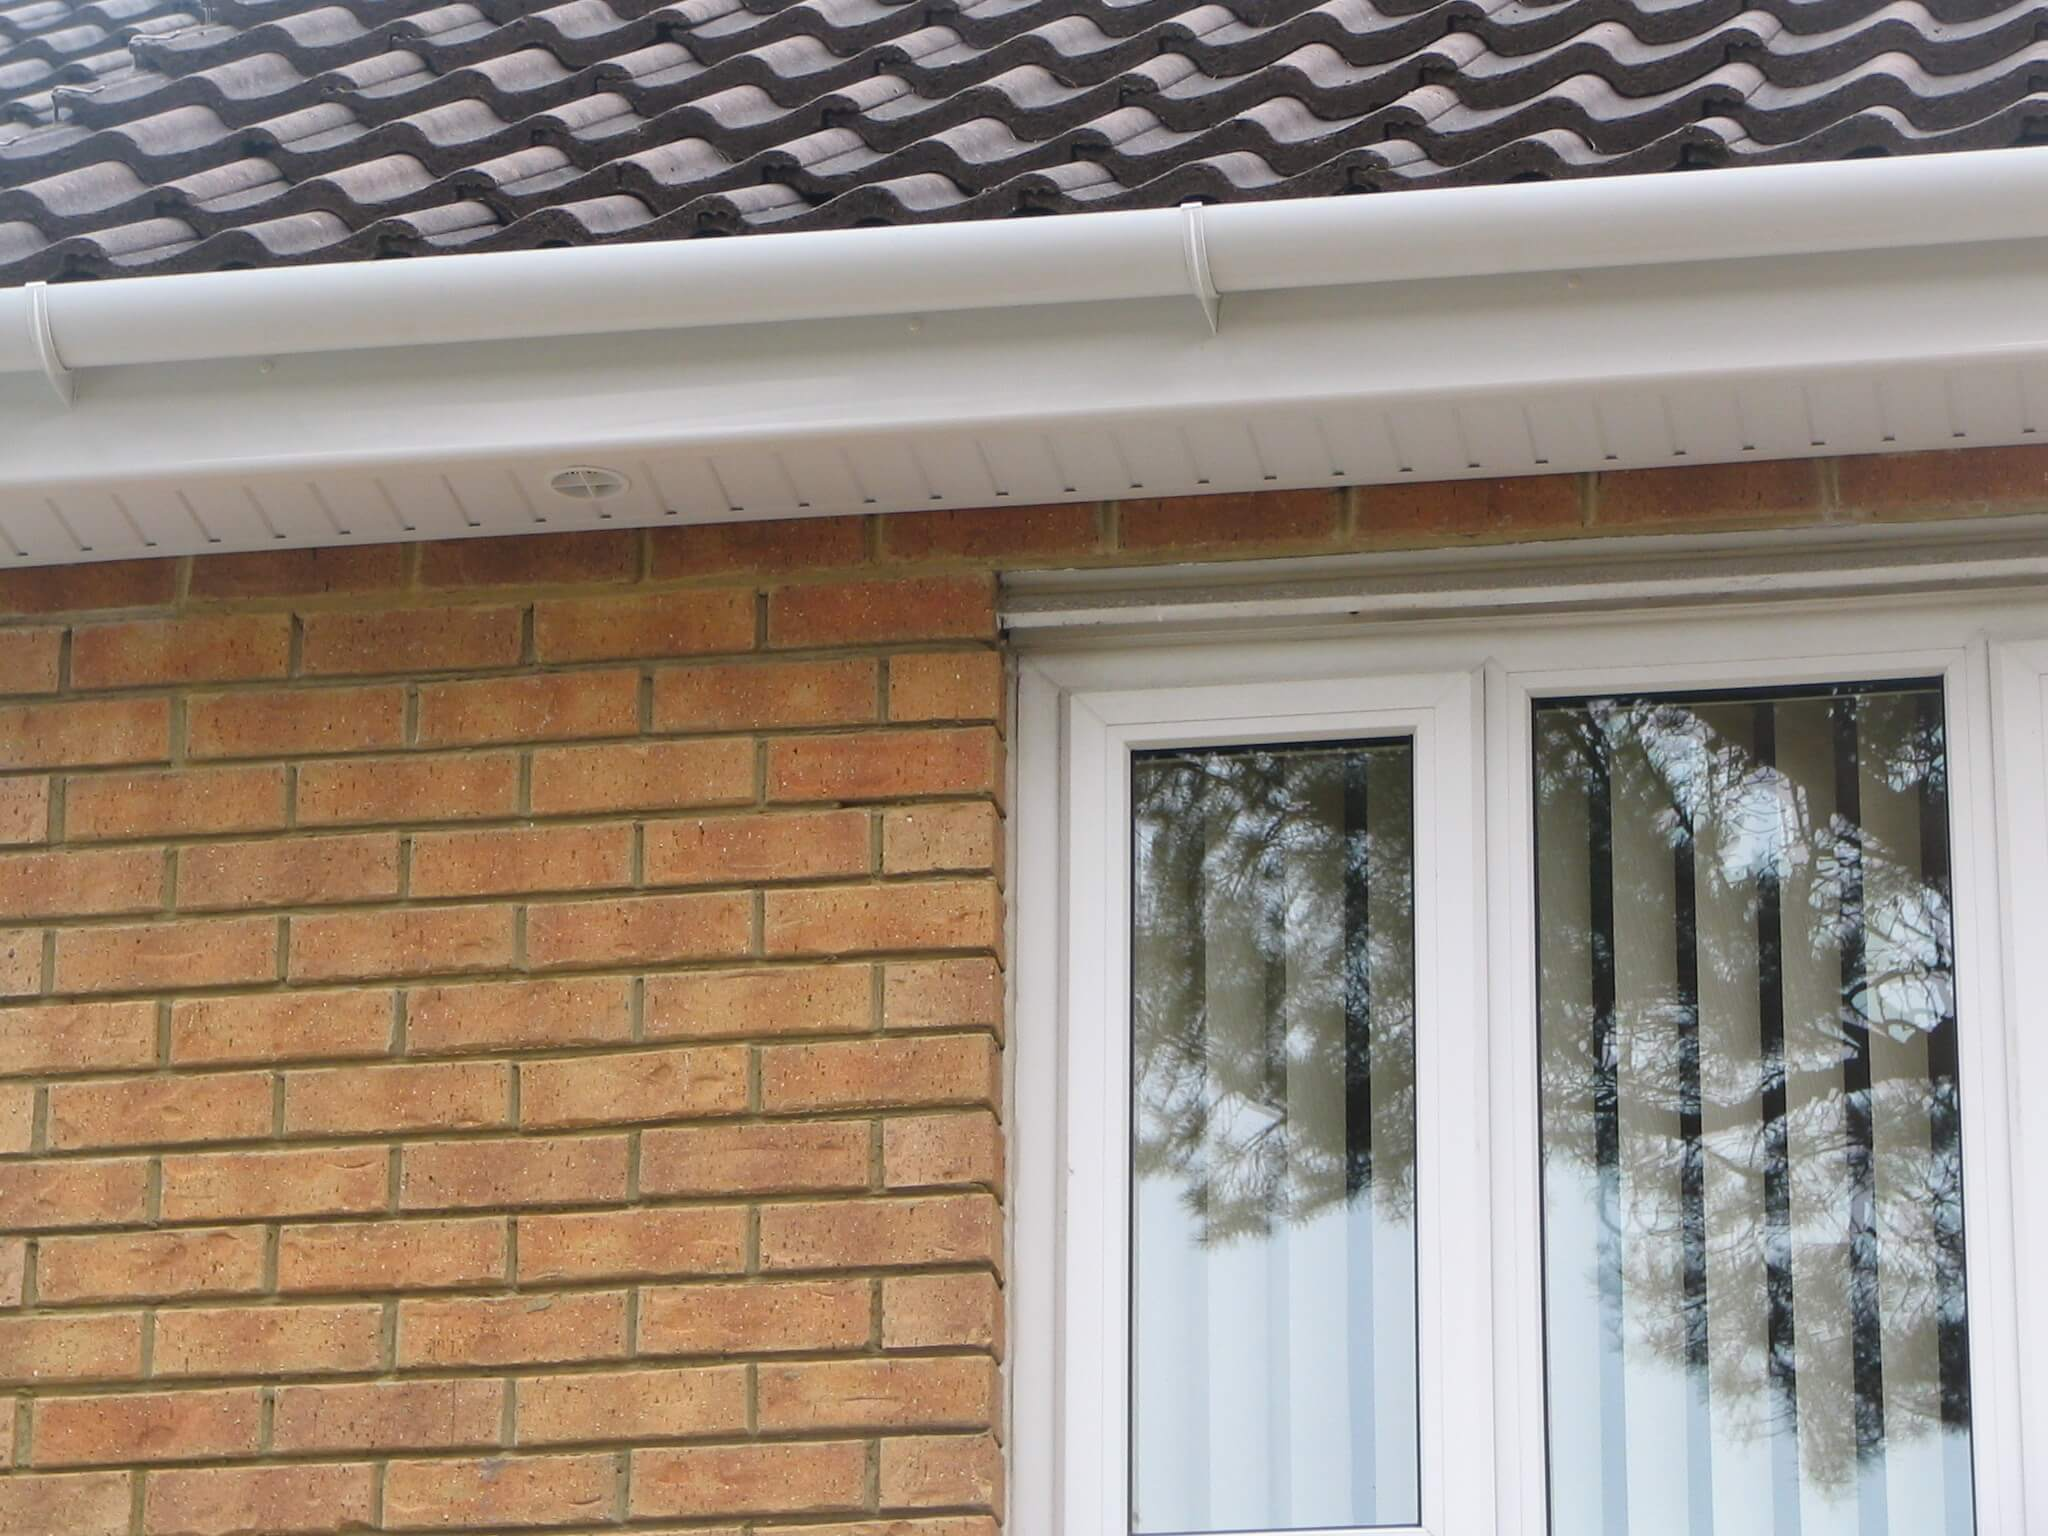 gallery 24 - white fascia and white round gutter